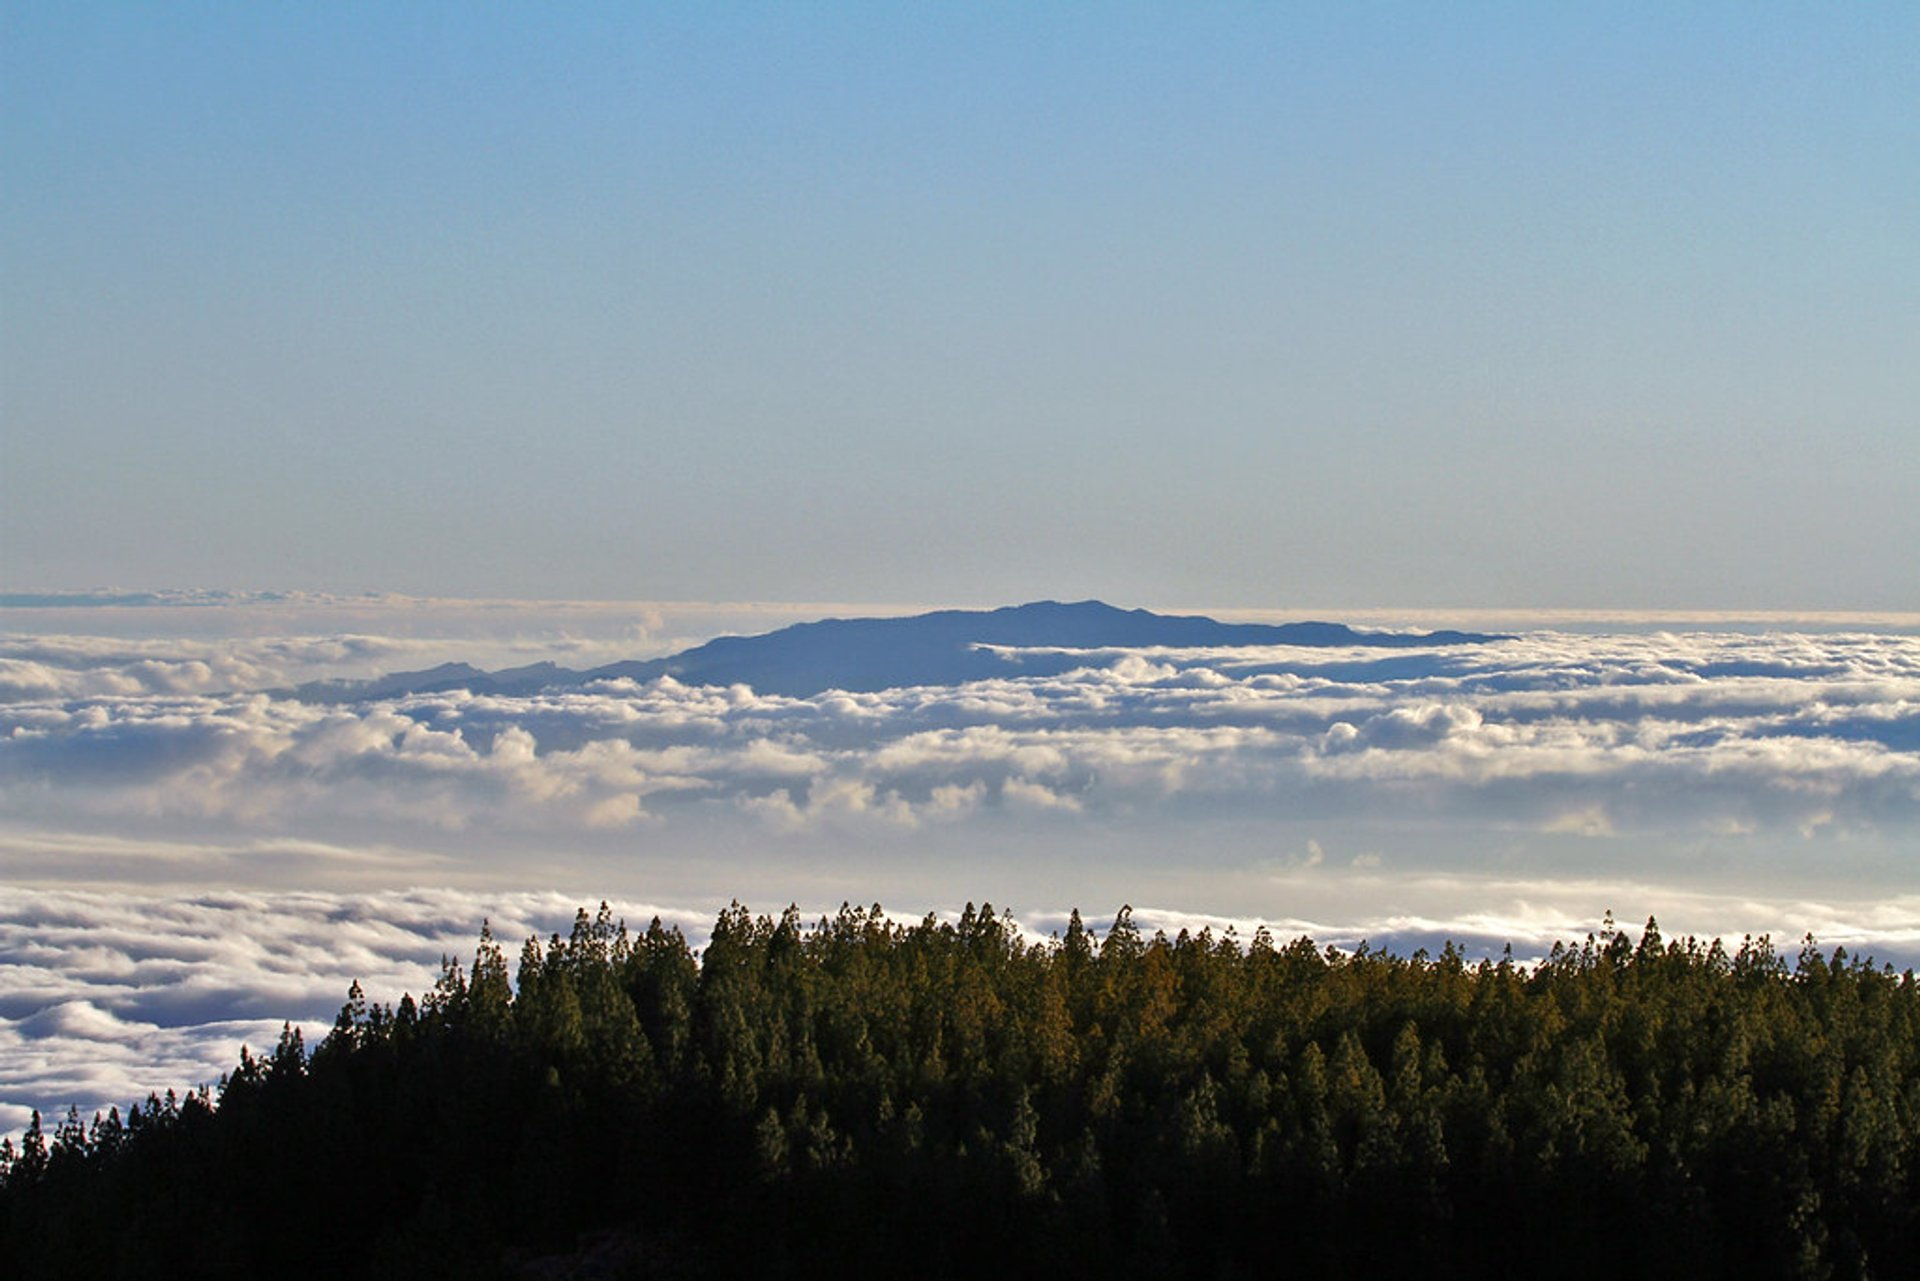 Sea of Clouds in Canary Islands 2020 - Best Time